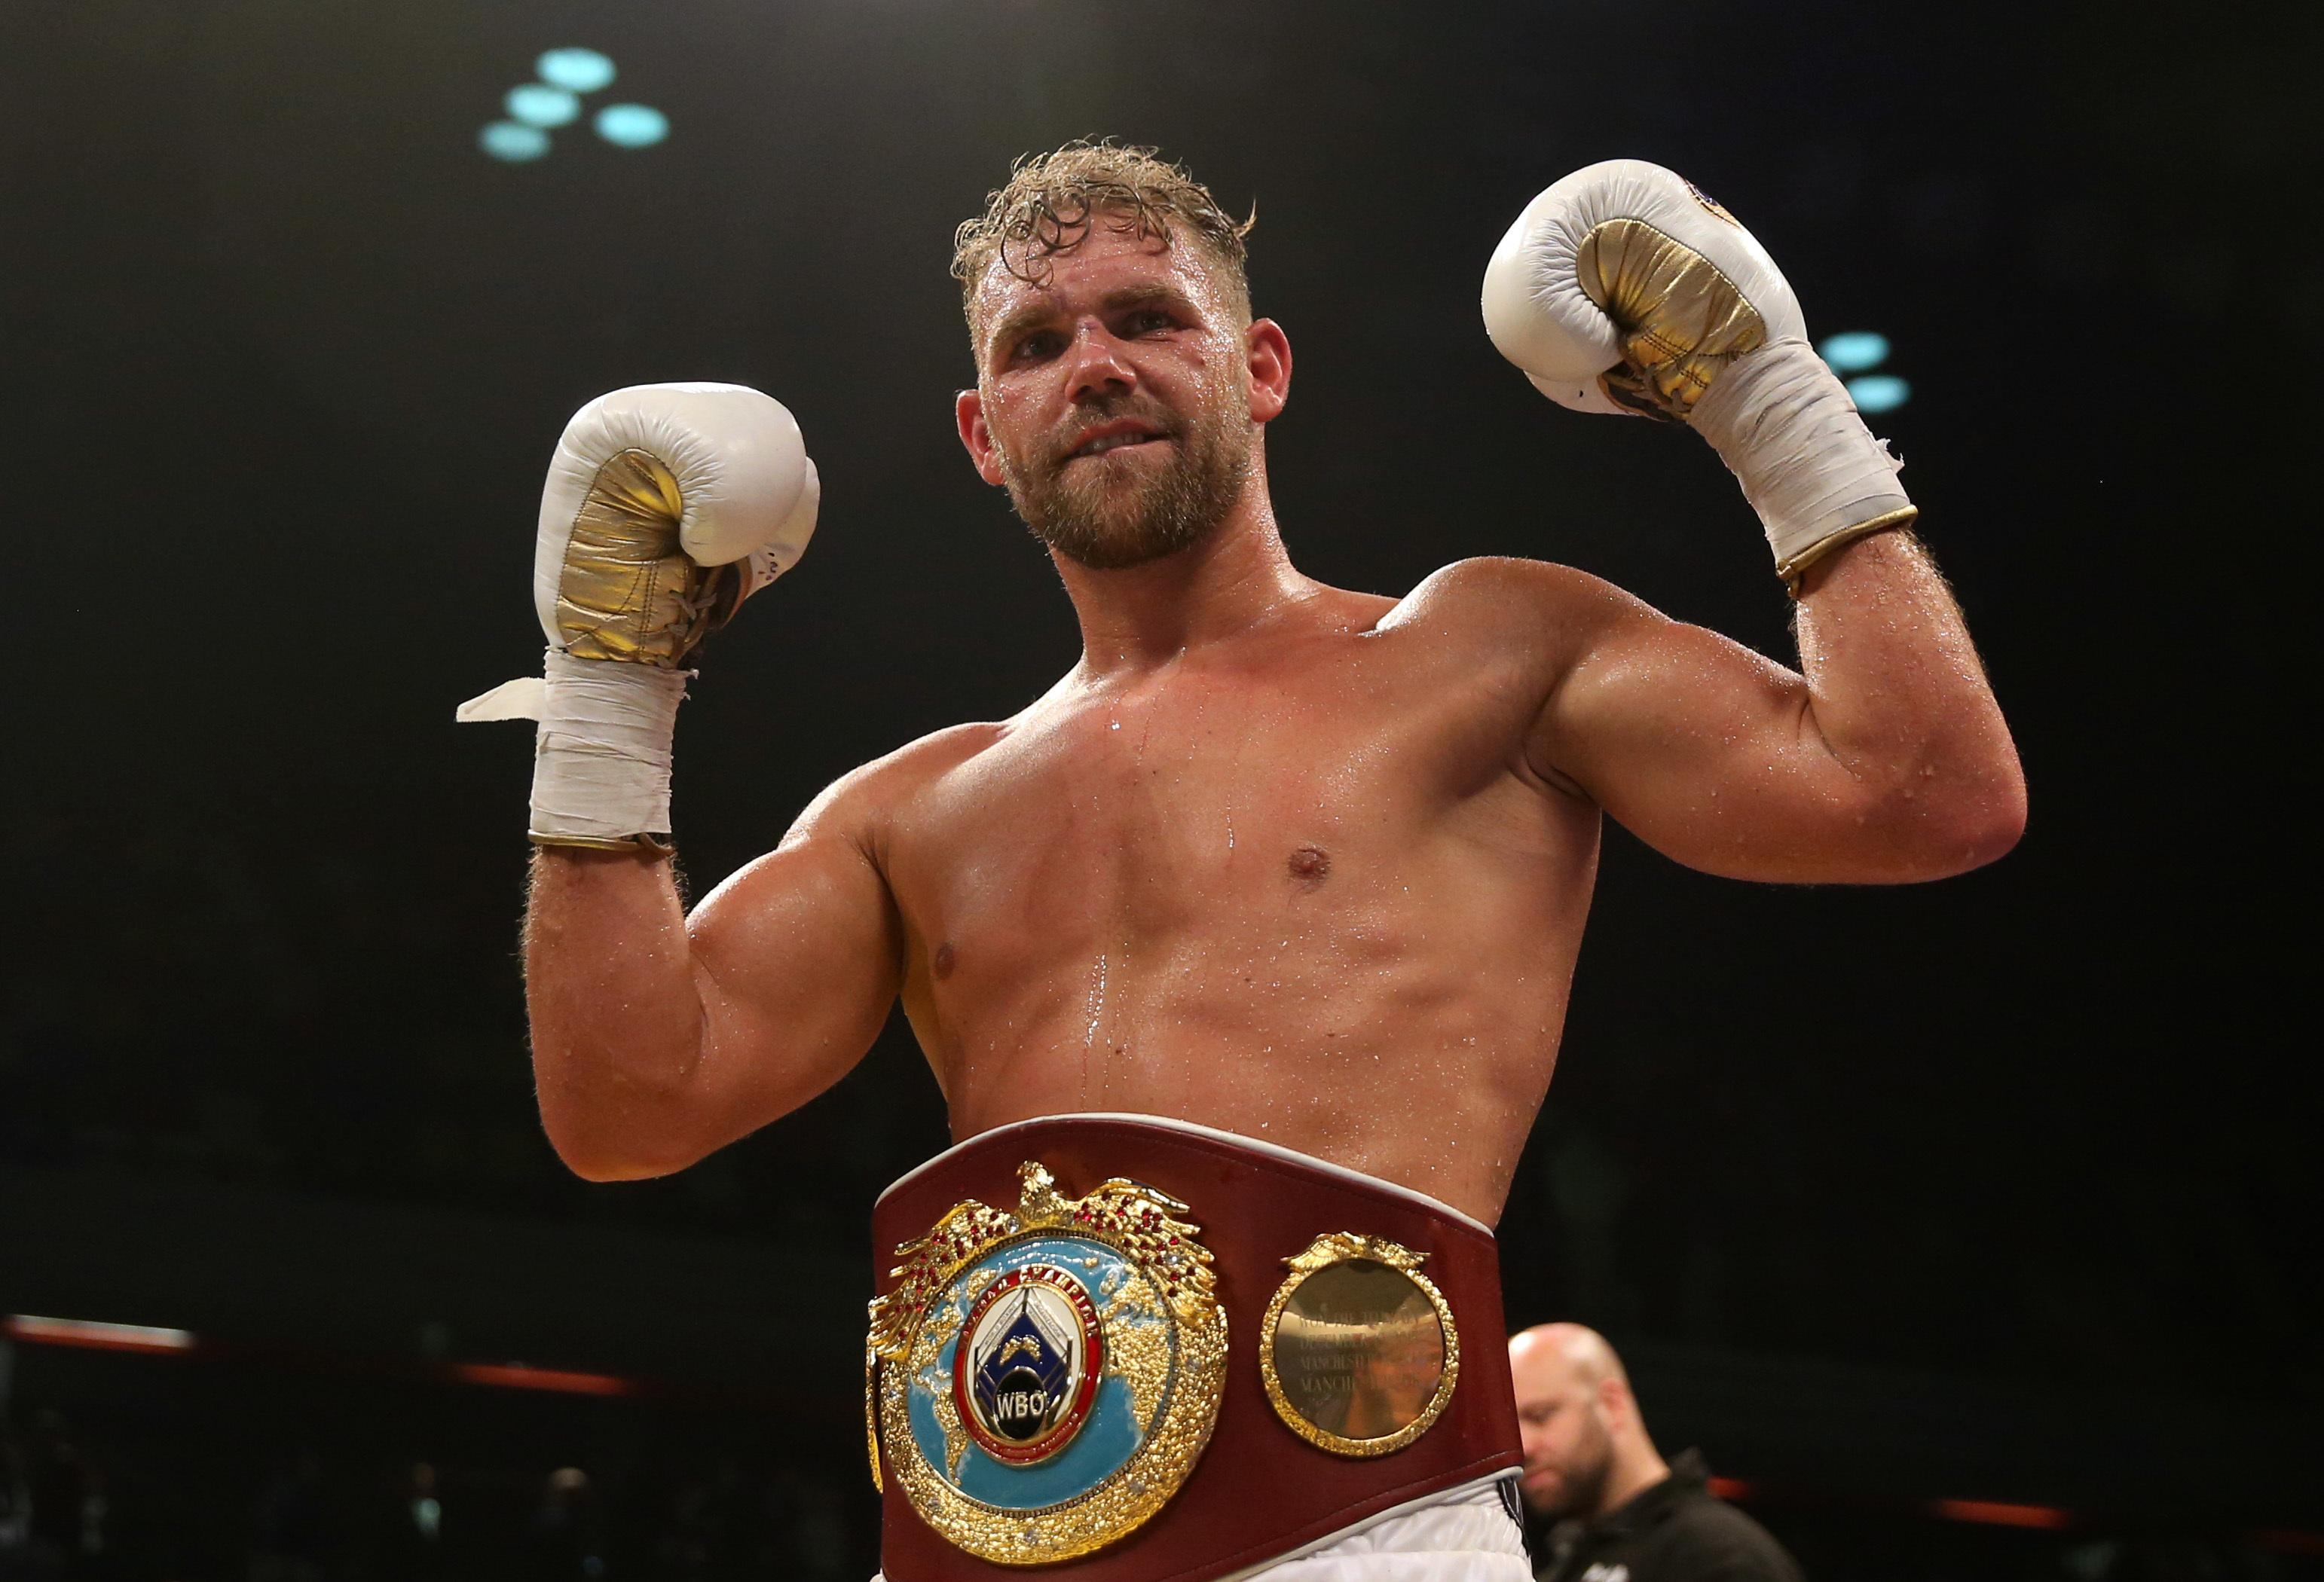 Billy Joe Saunders might hold the WBO middleweight title - but injuries have restricted his defences of the strap